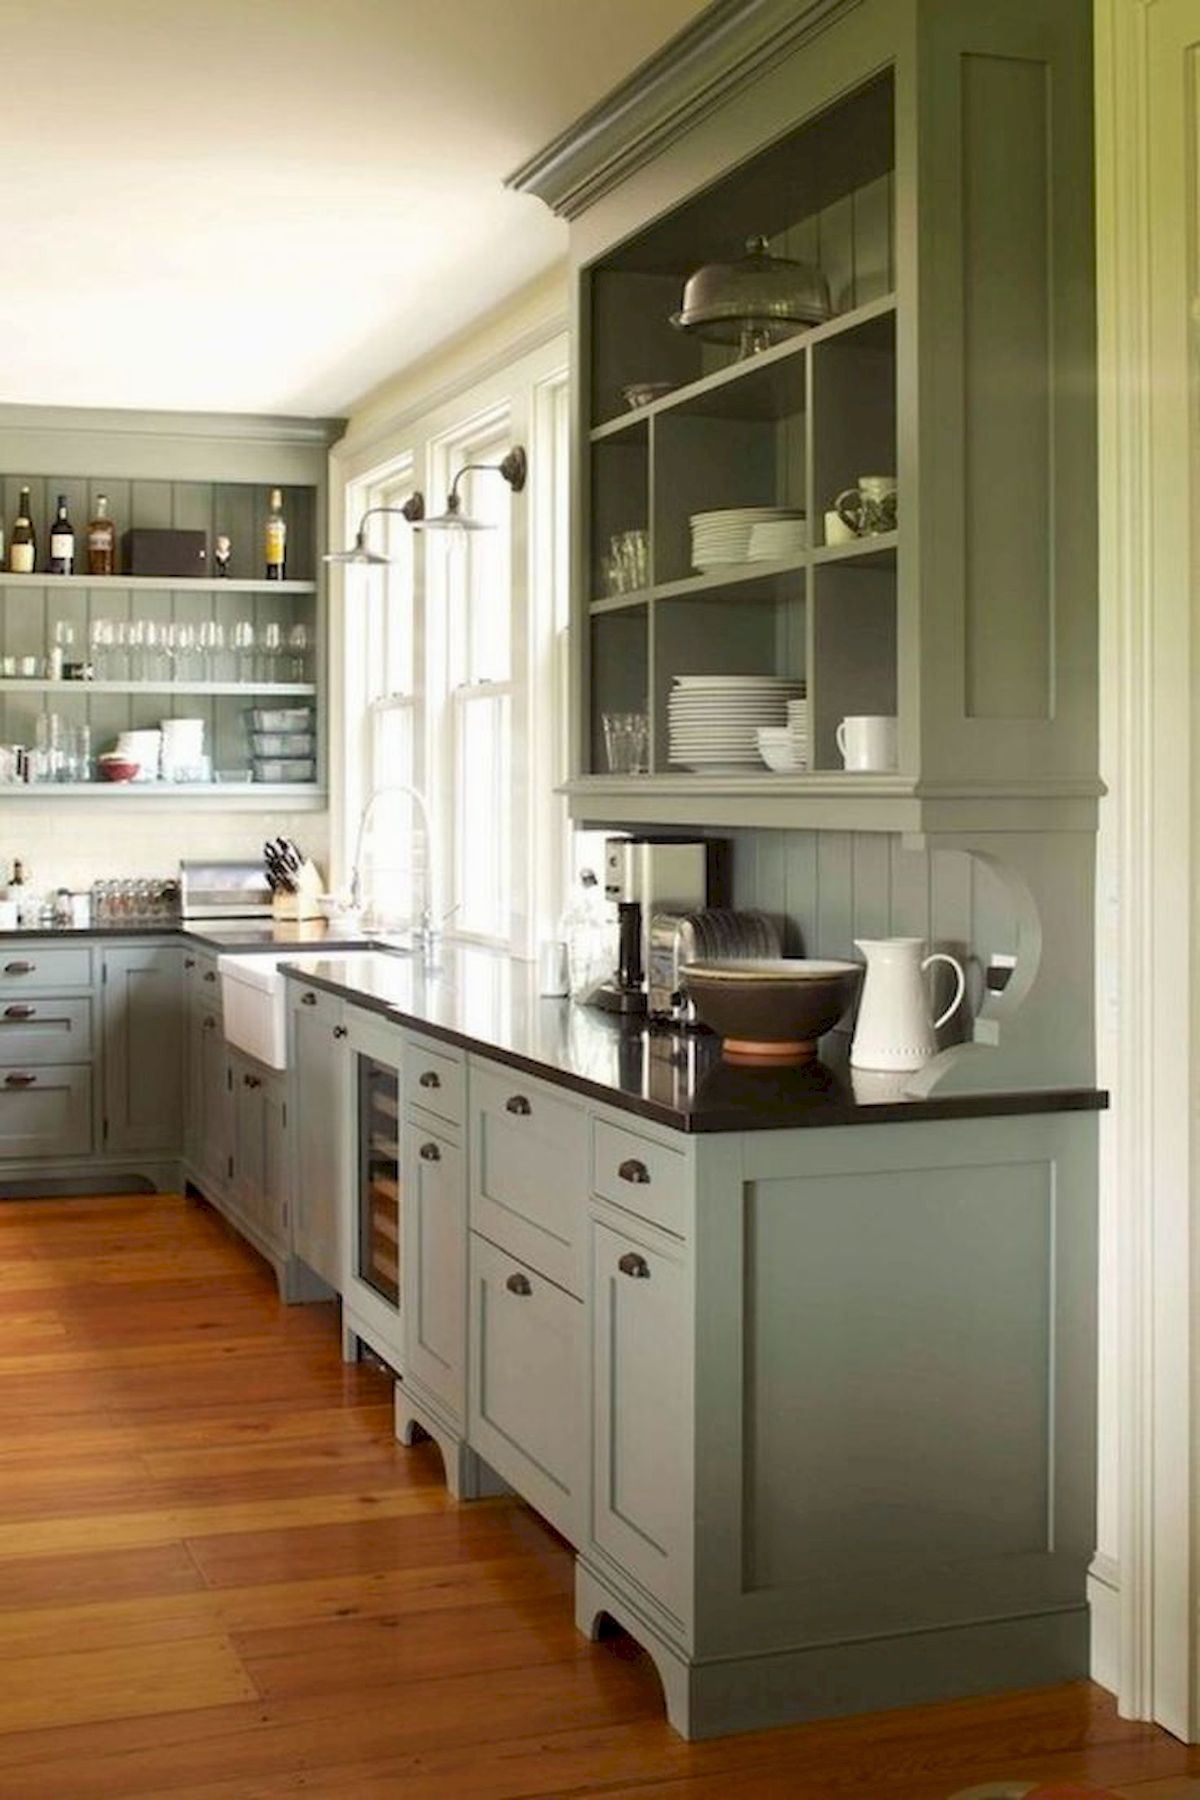 40 awesome sage greens kitchen cabinets decorating farmhouse style kitchen kitchen cabinet on kitchen cabinets farmhouse style id=62135